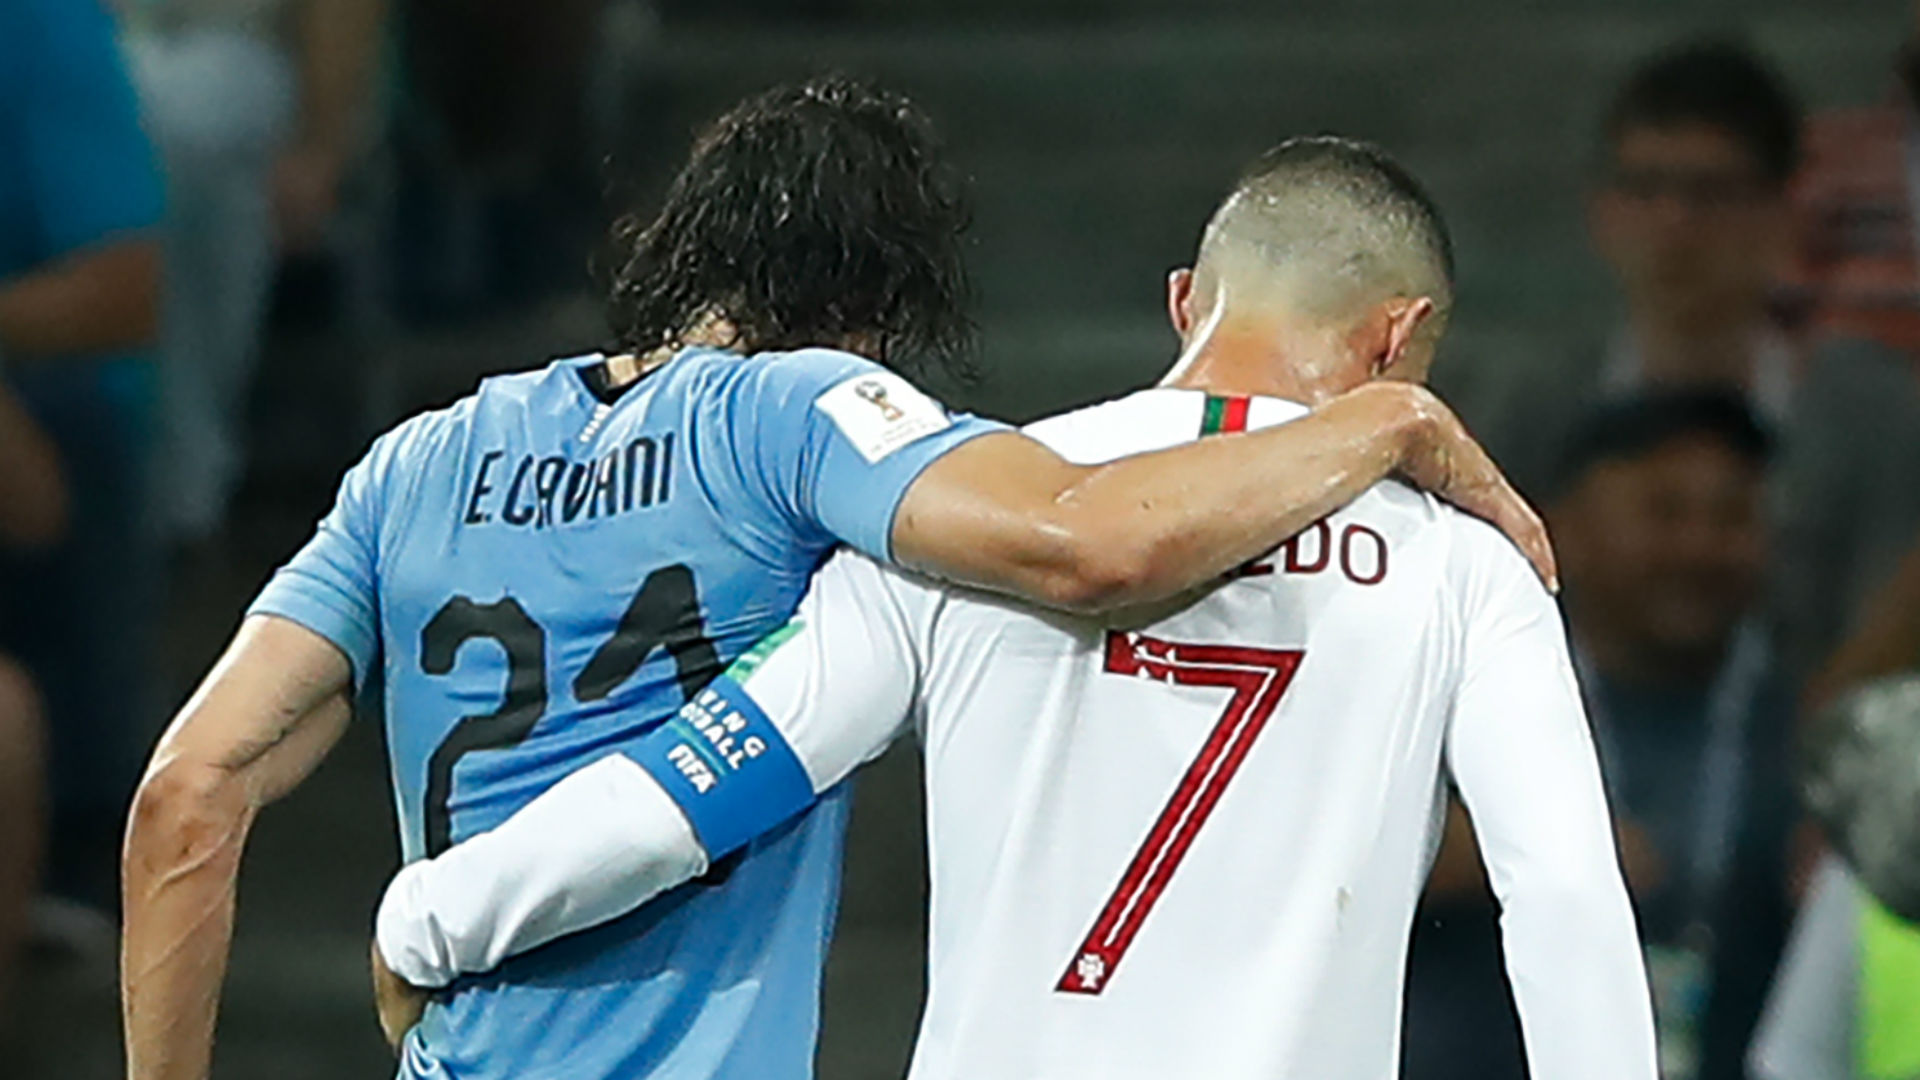 Portugal 1-2 Uruguay |Cavani brace sends Ronaldo and Portugal packing